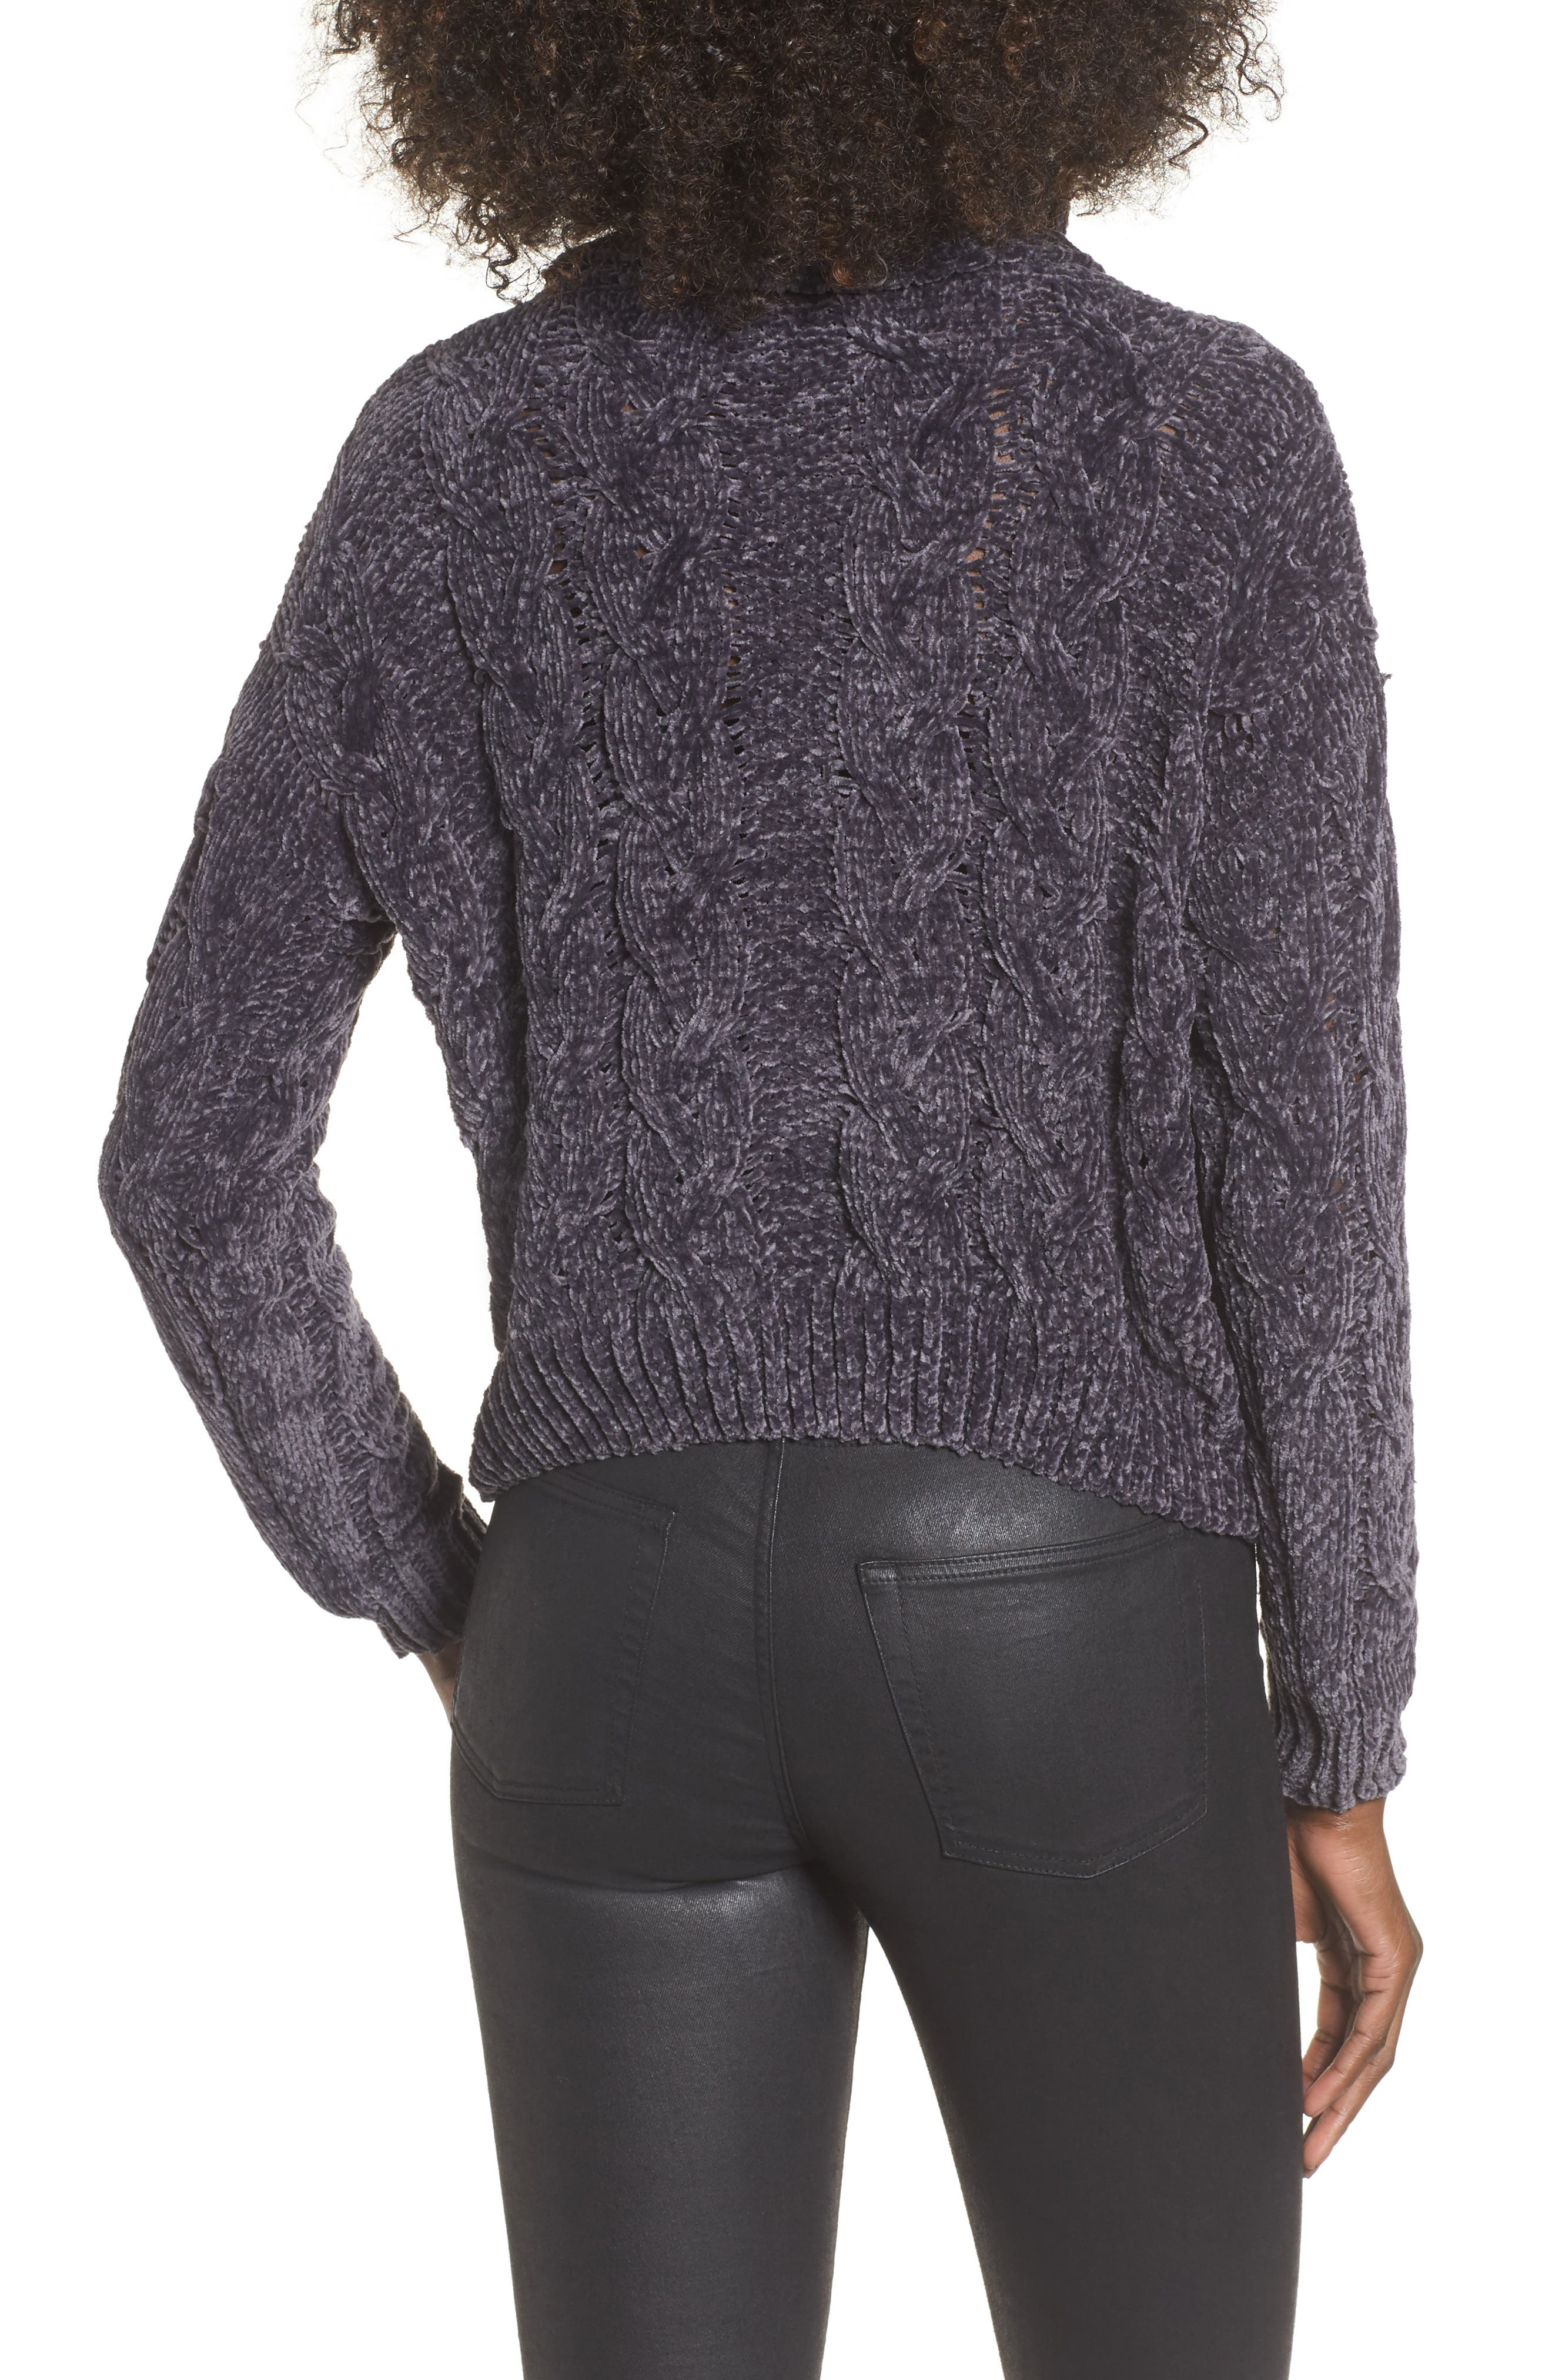 Chenille Turtleneck Sweater,                             Alternate thumbnail 2, color,                             020